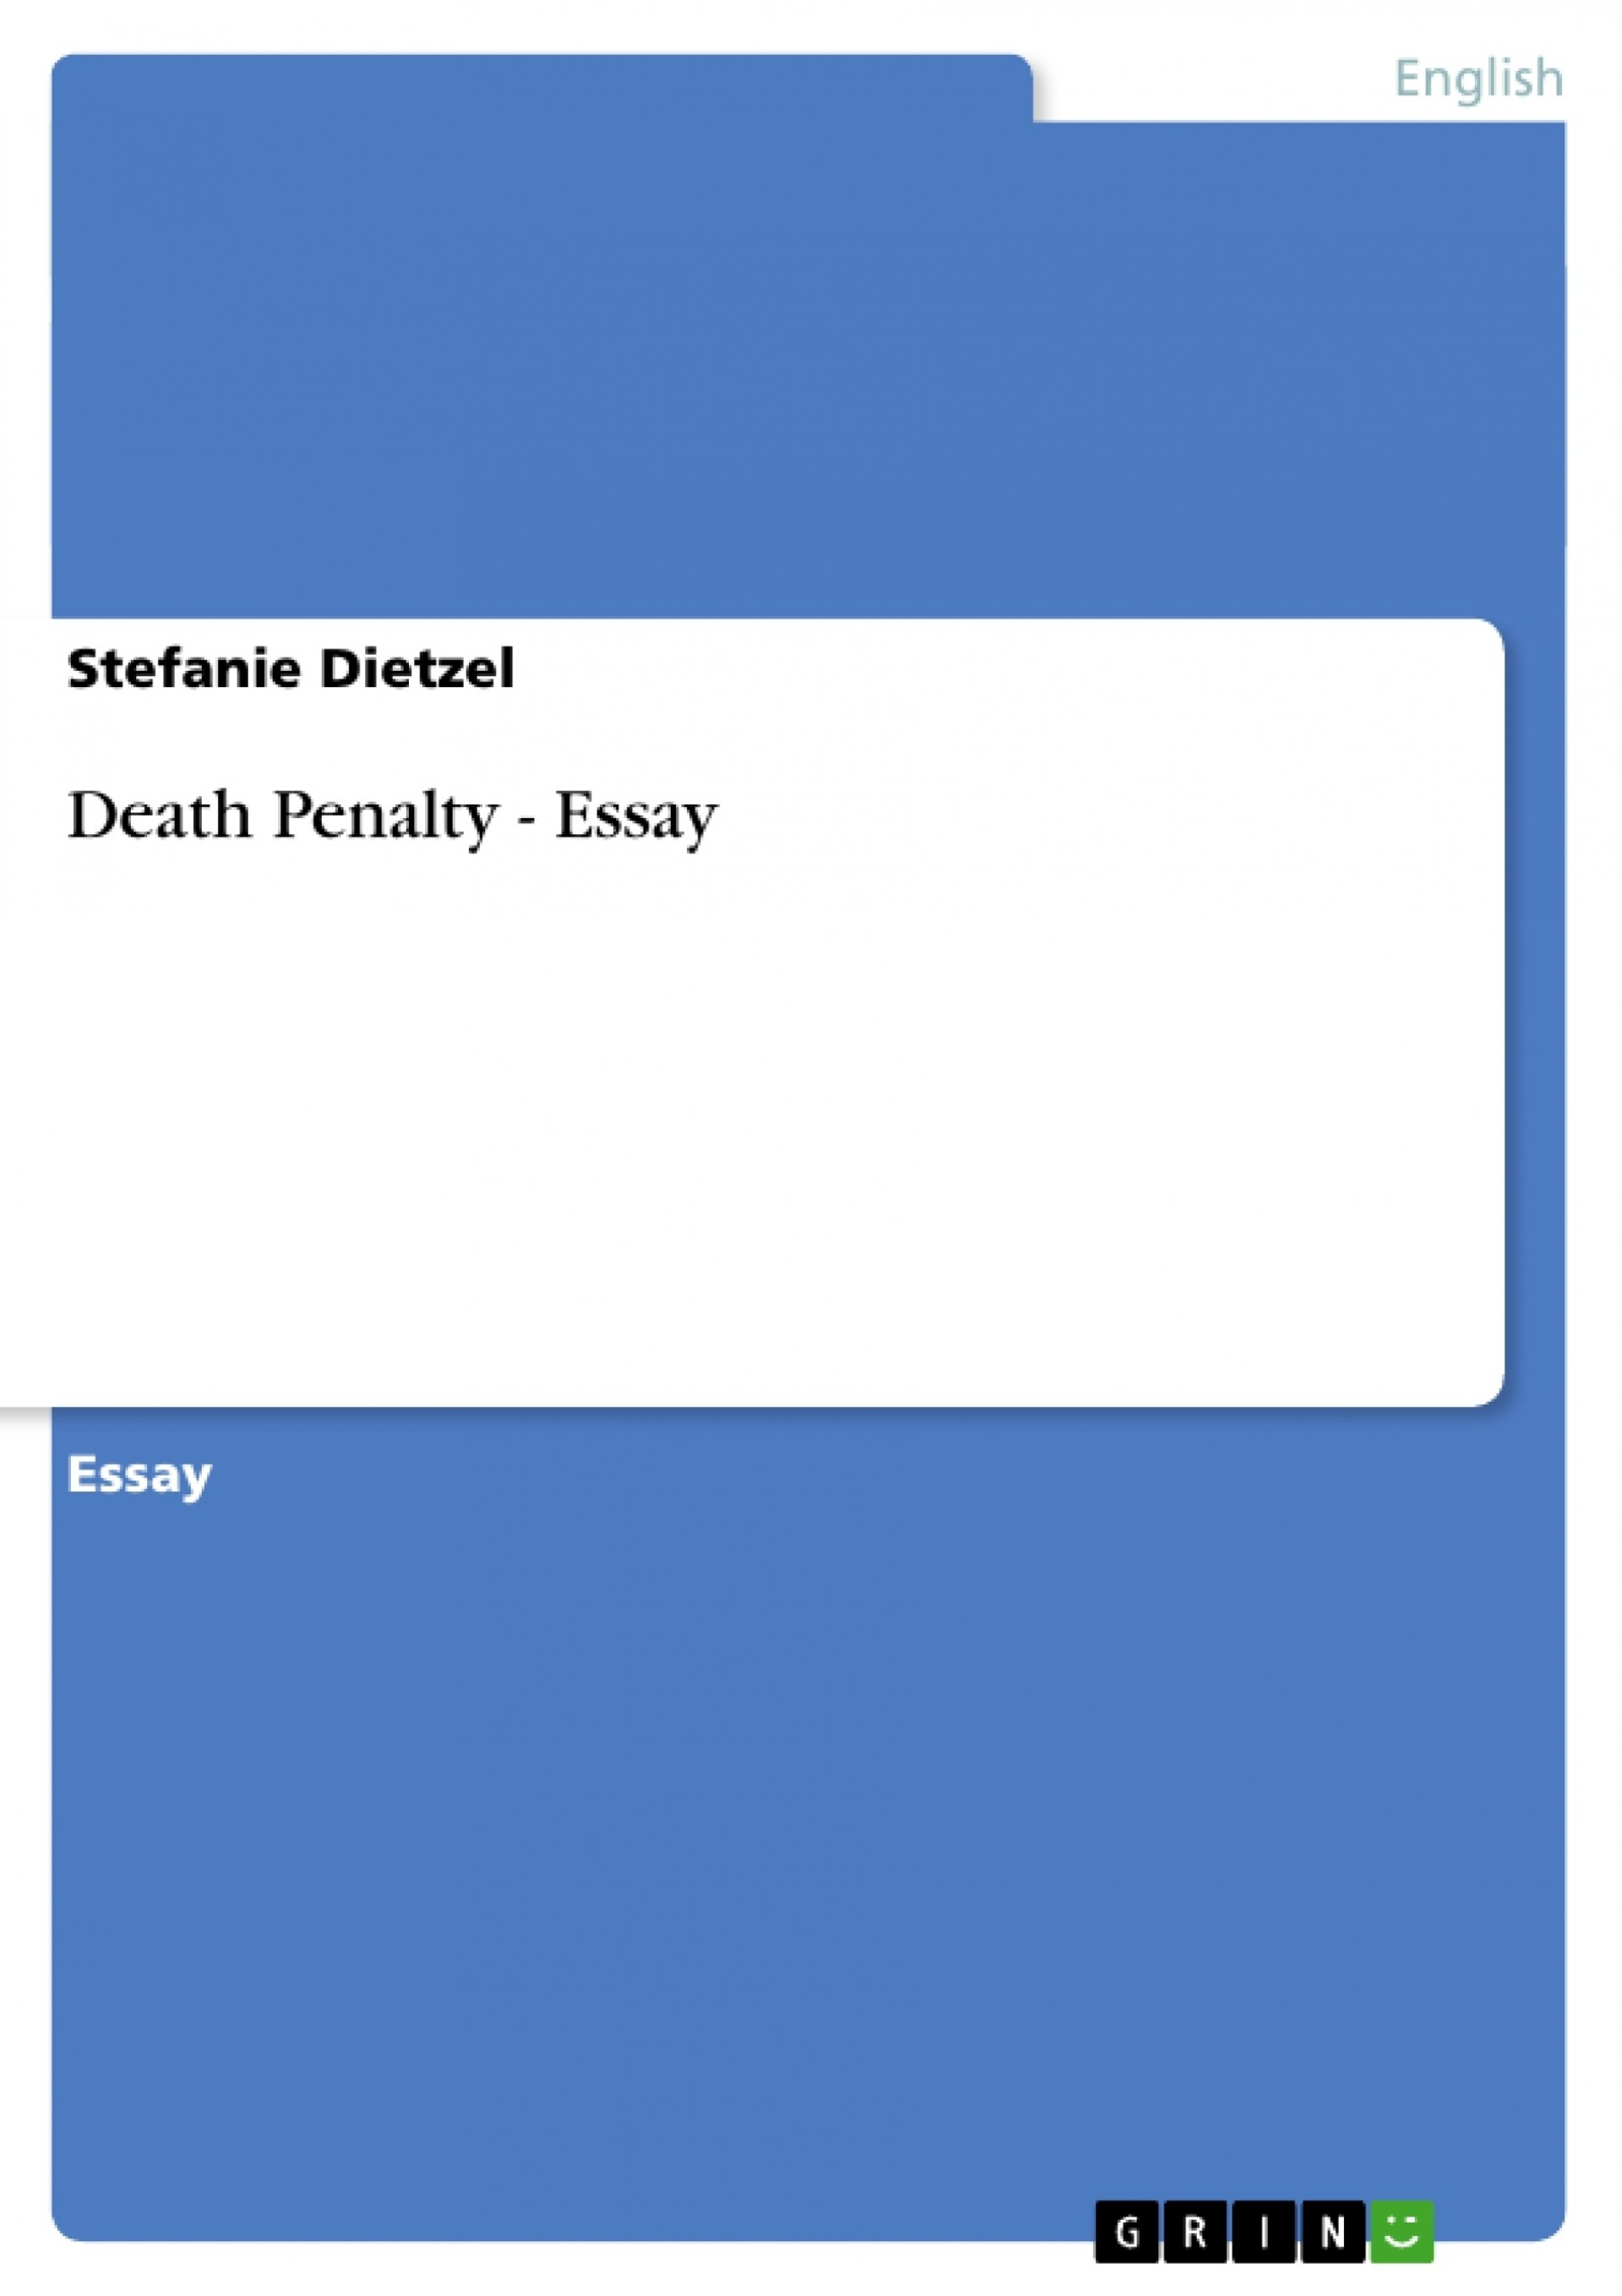 020 133402 0 Essay On Death Penalty Beautiful Should Be Abolished Or Not In Hindi 1920